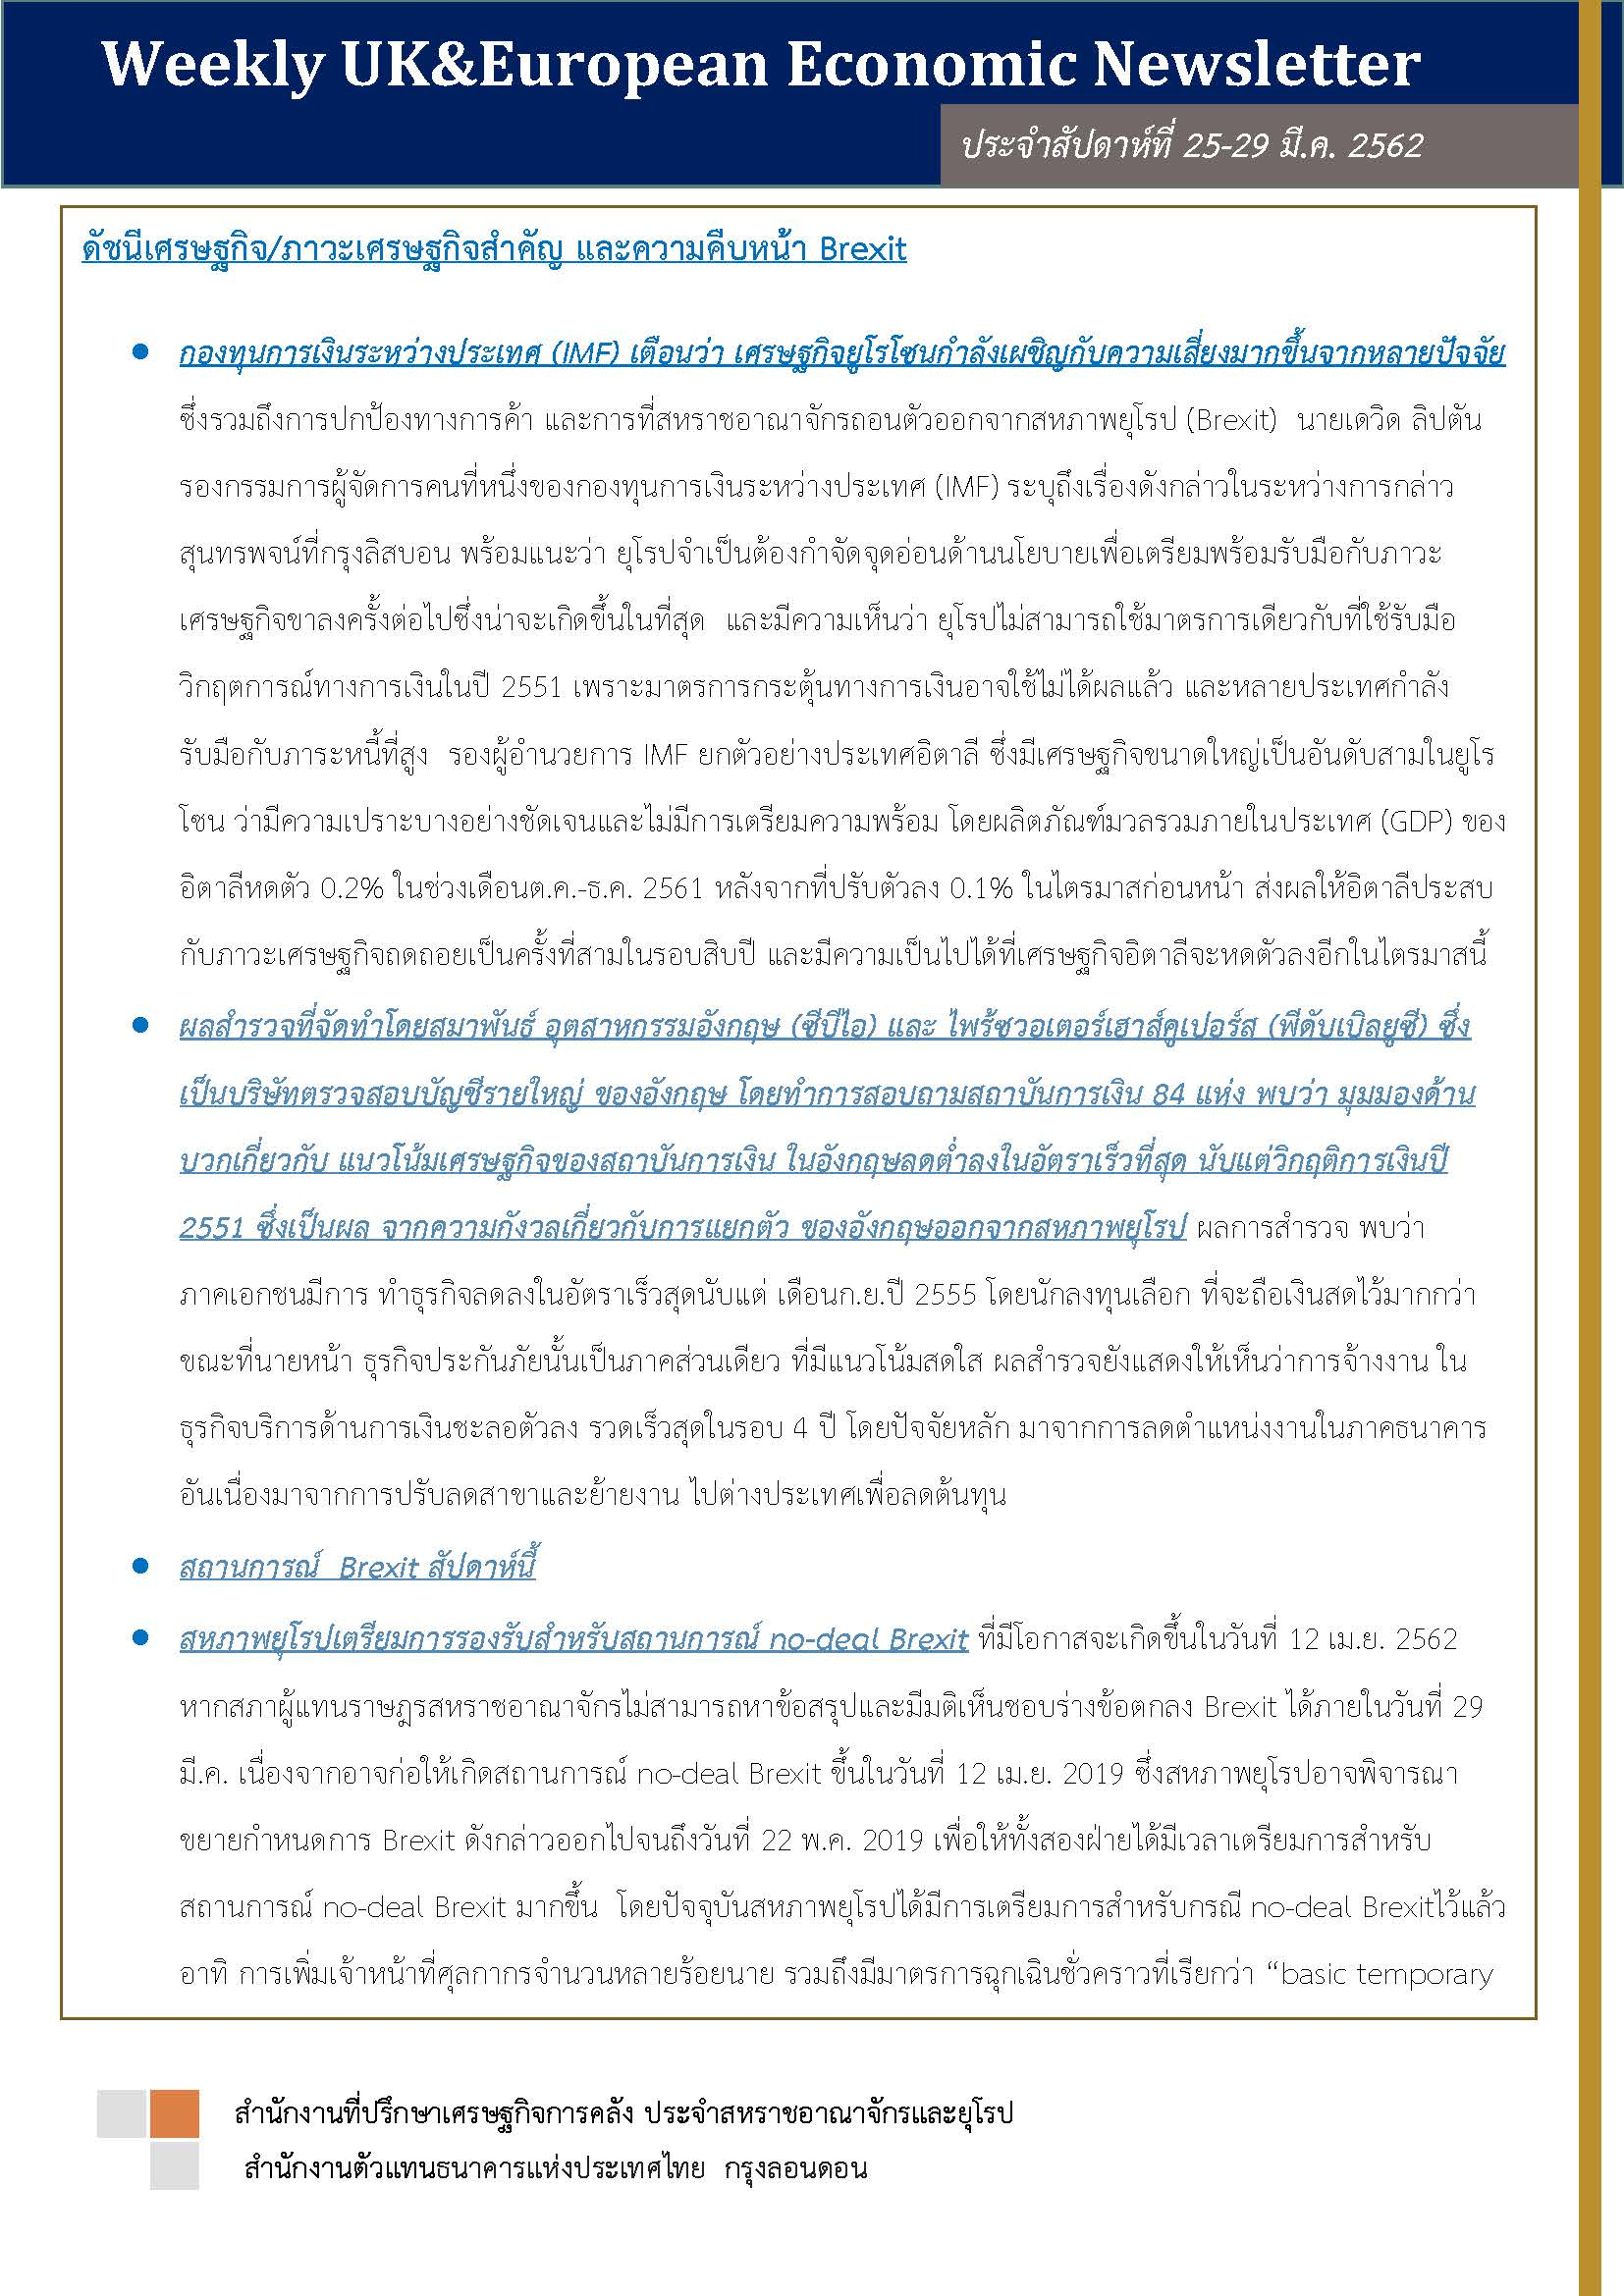 Weekly-UK-European-Economic-News-Summary-(25-29-มีนาคม-2019)_Page_1.jpg